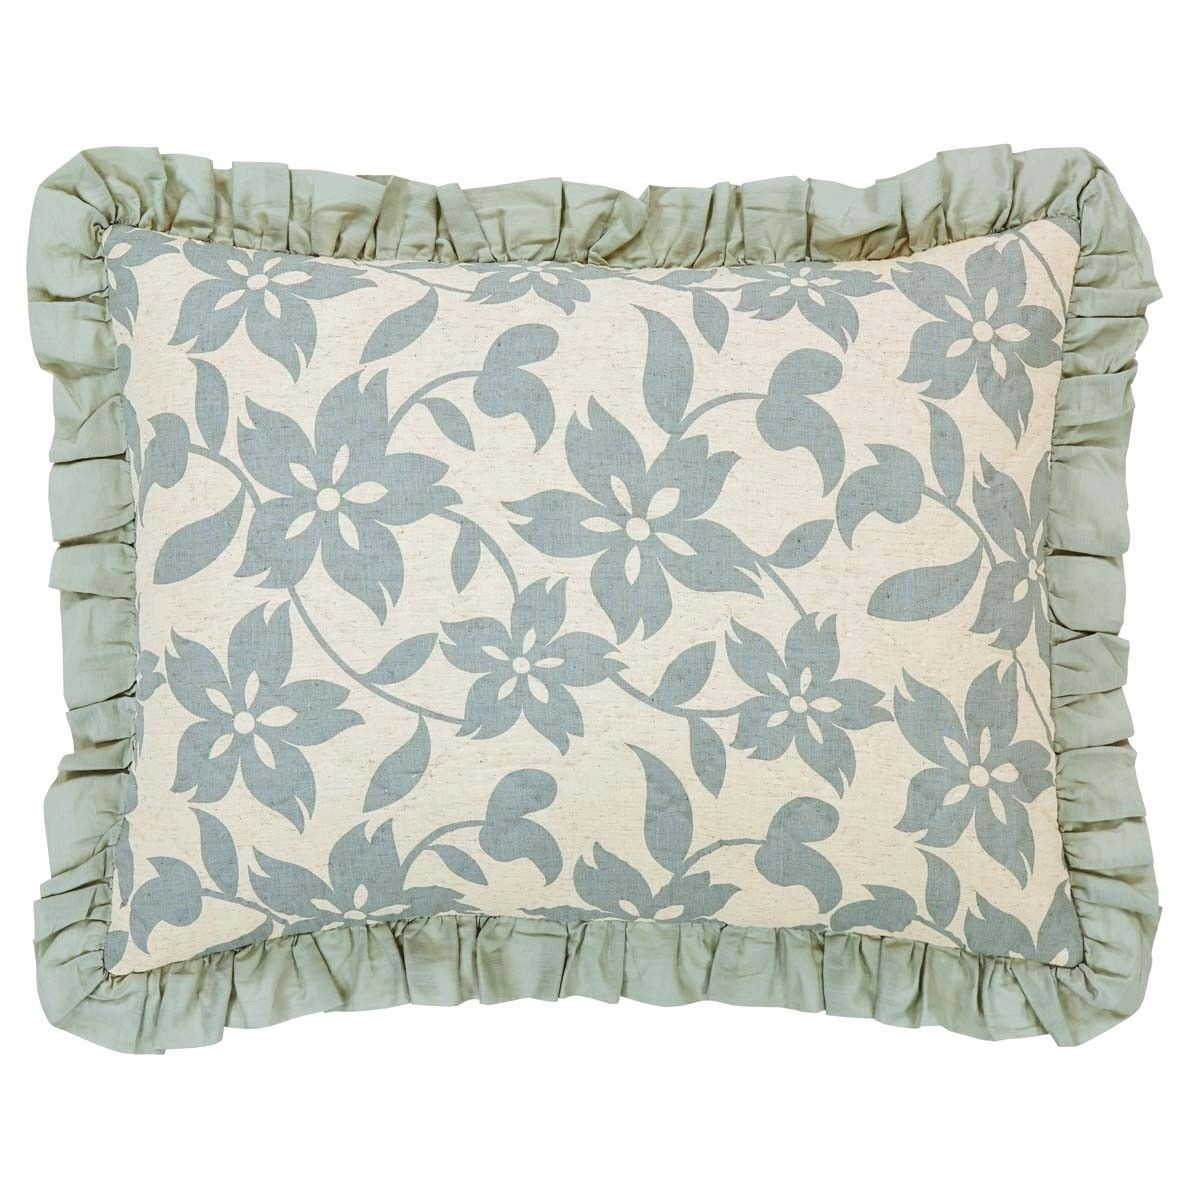 Briar Sage Green Floral Hand-Quilted Linen & Cotton Ruffled Standard Pillow Sham